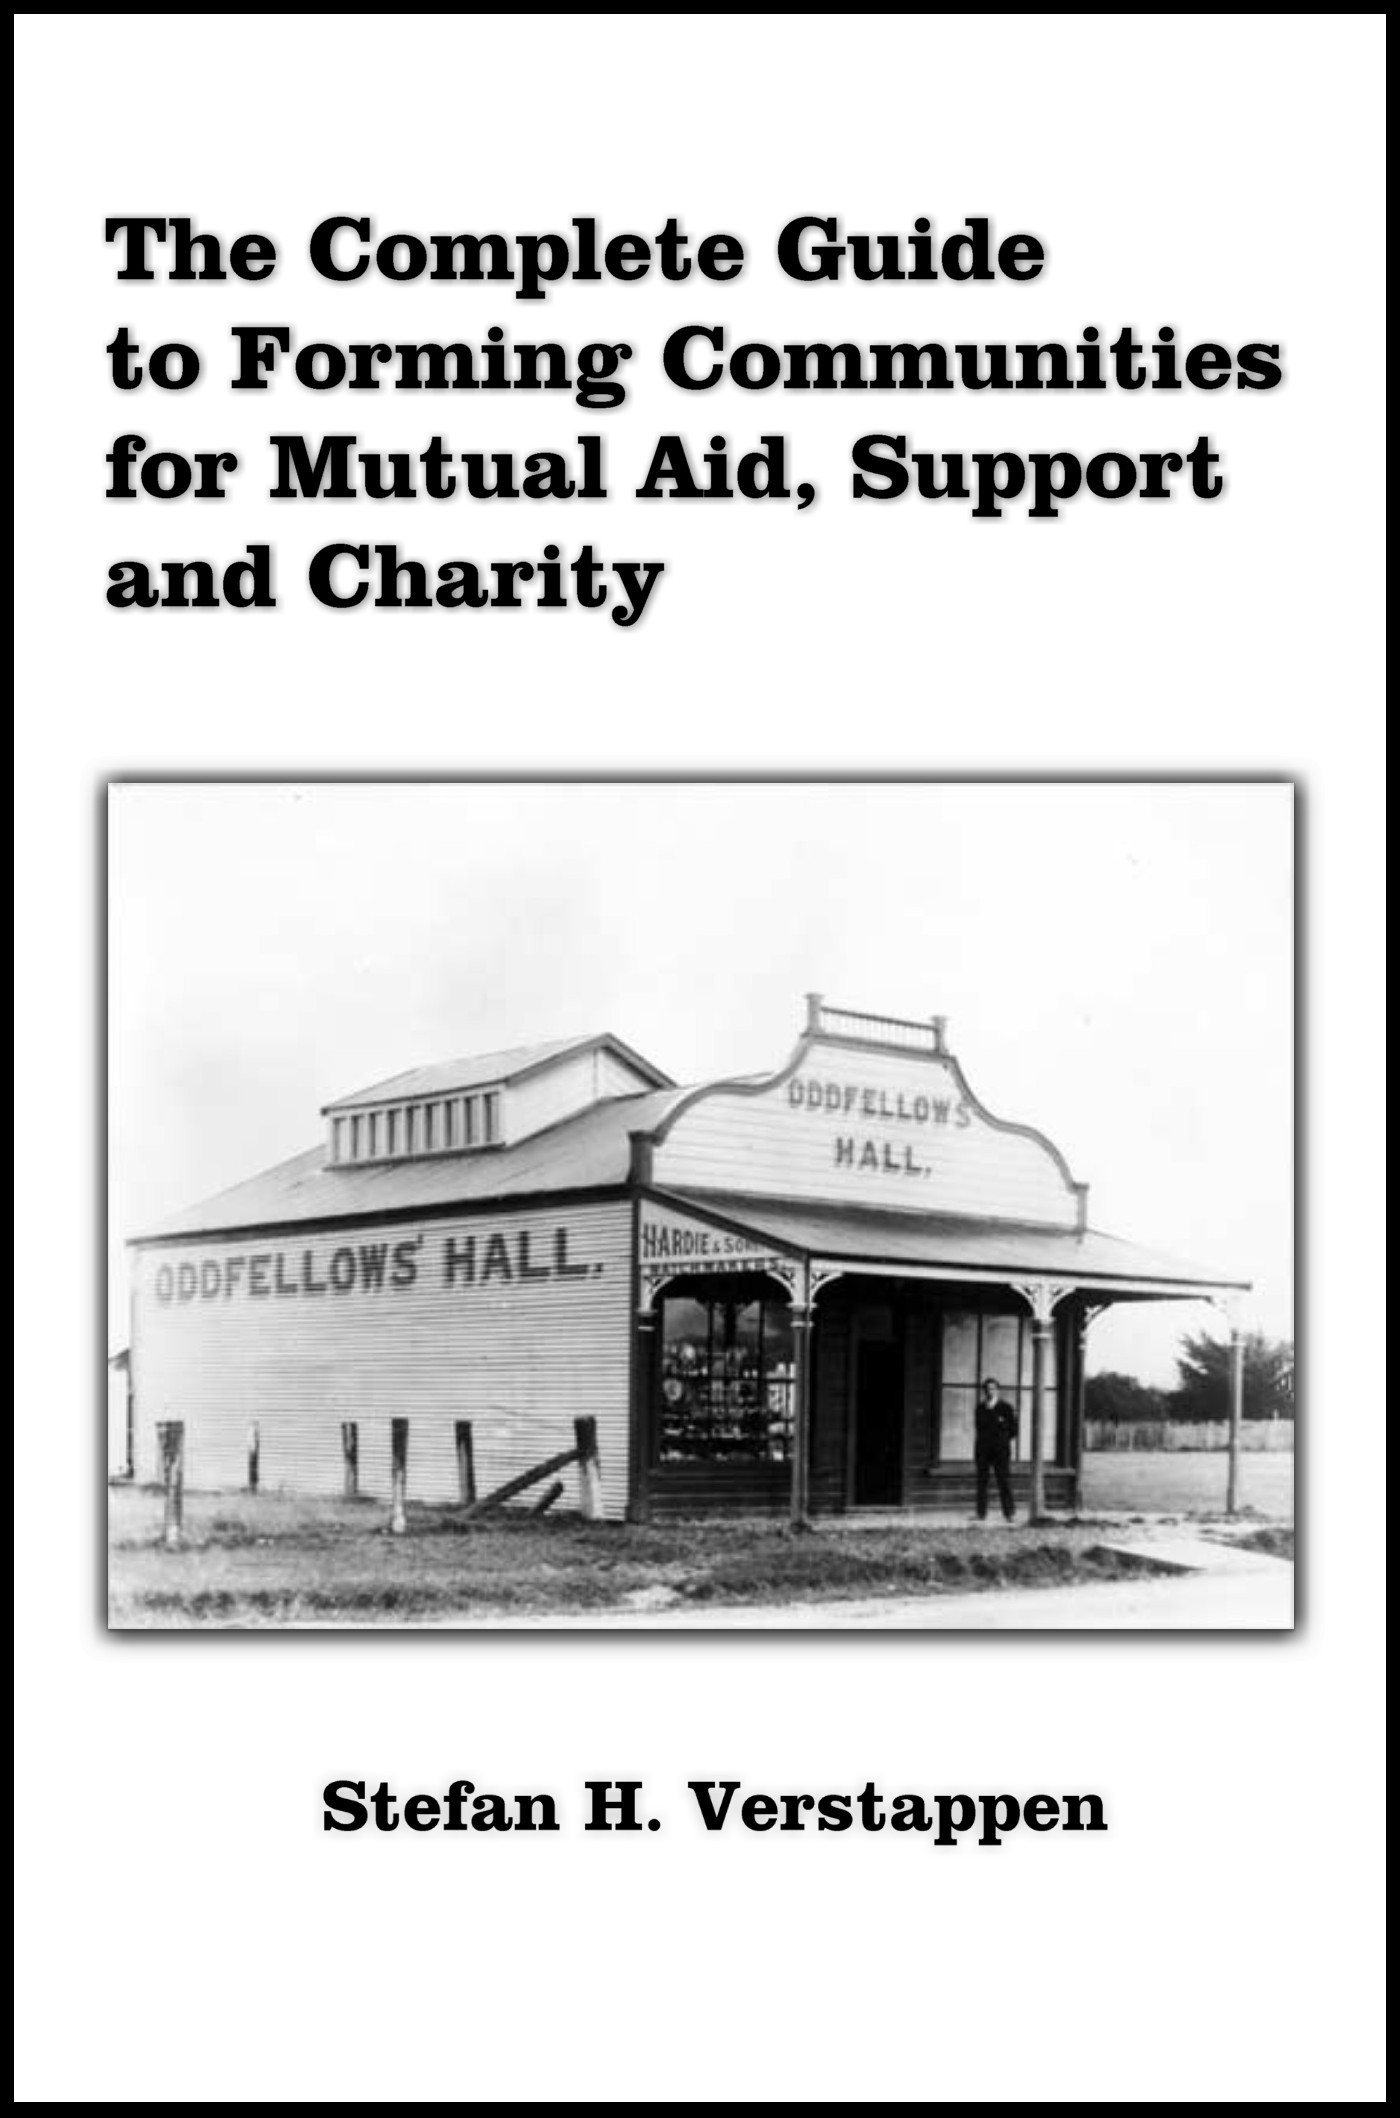 cff345ebdbdc The Complete Guide to Forming Communities for Mutual Aid